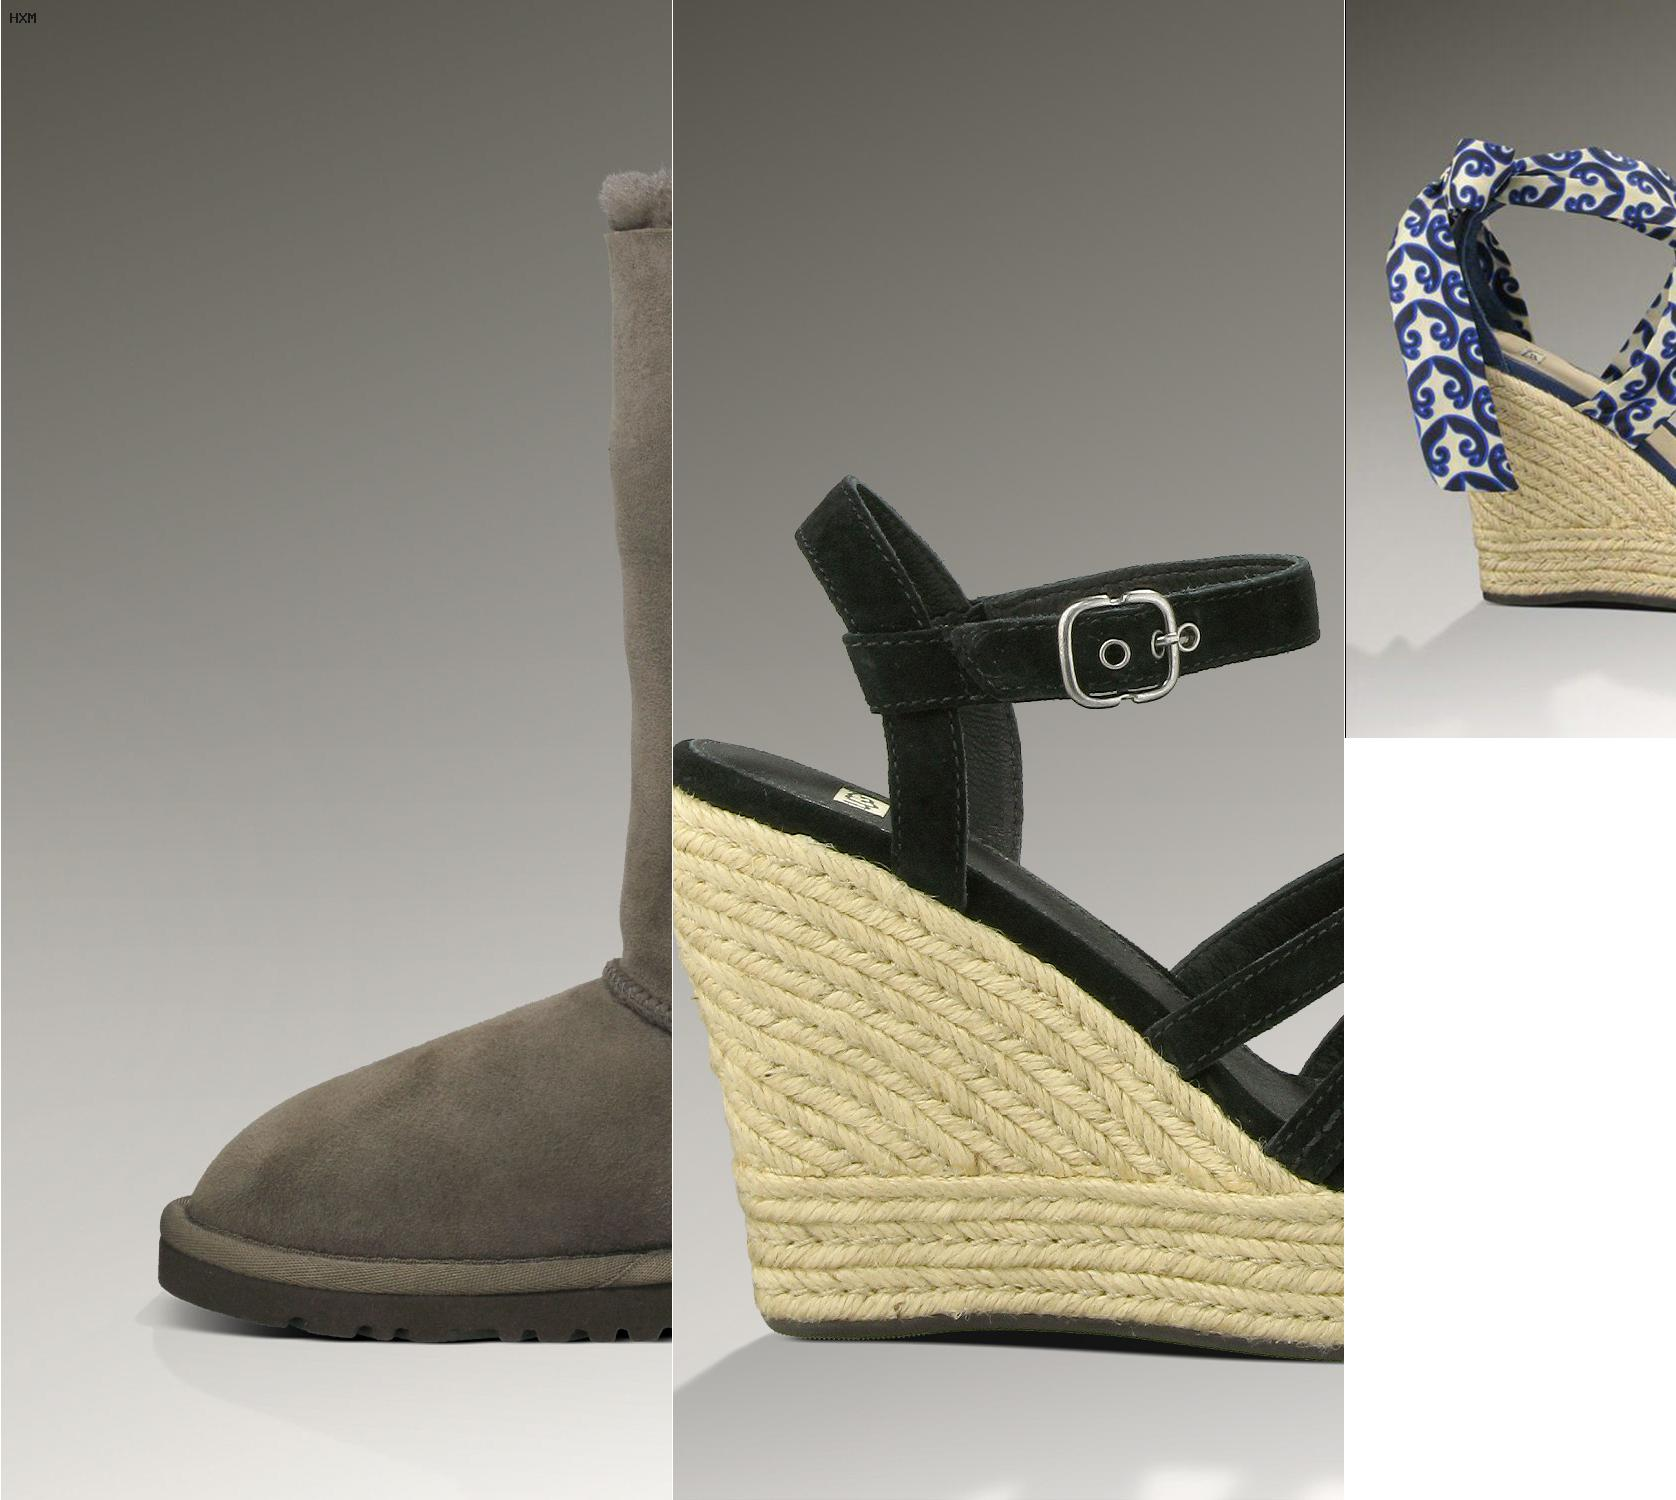 ugg boots france pas cher